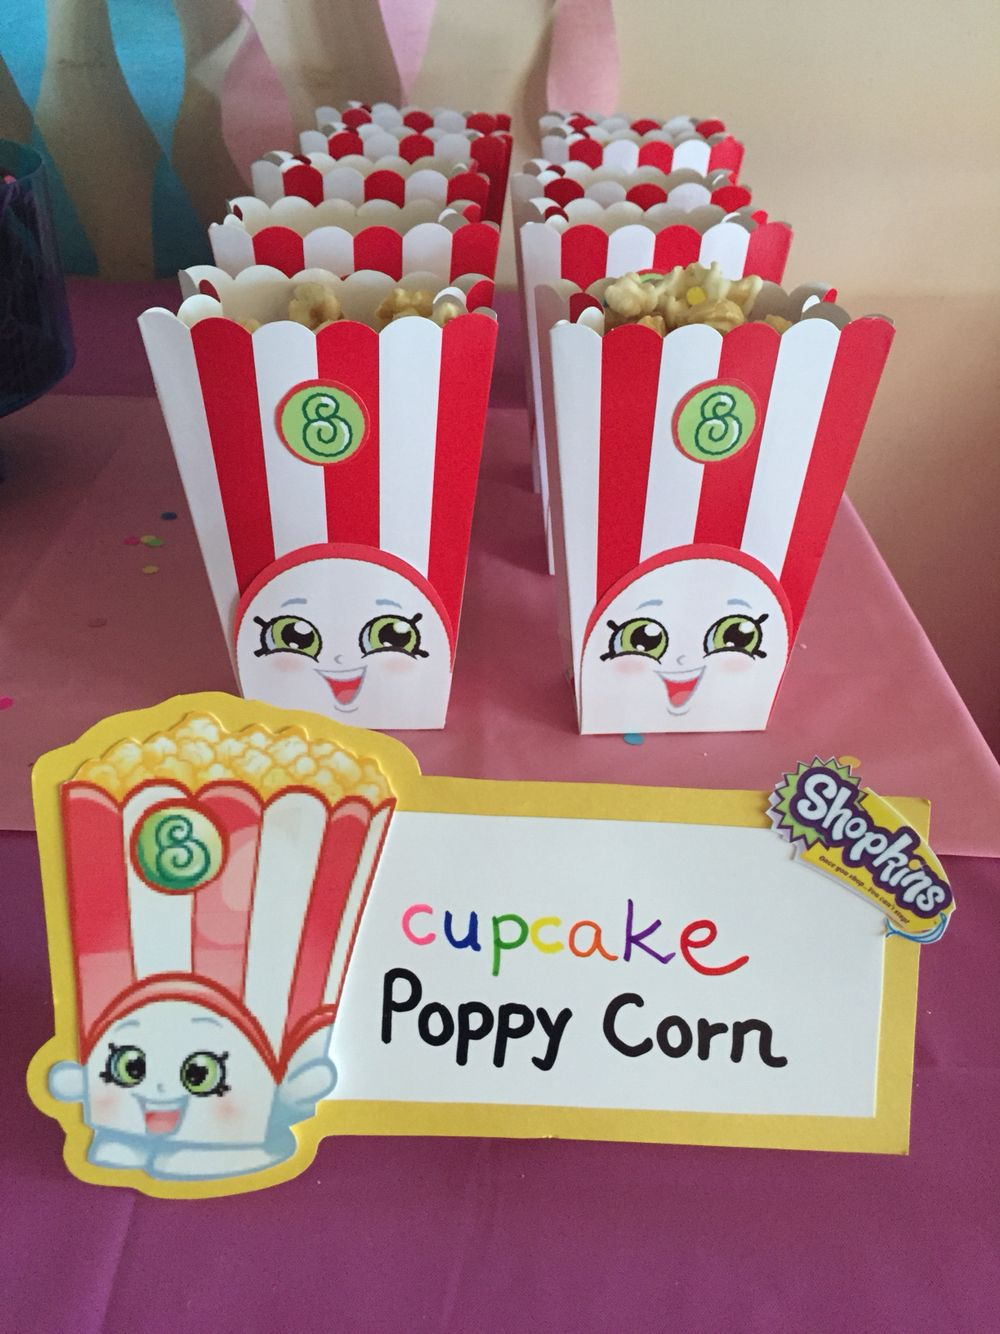 Shopkins Birthday Party Idea  Poppy Corn (Cupcake Carmel Corn From  Popcornopolis, Popcorn Boxes